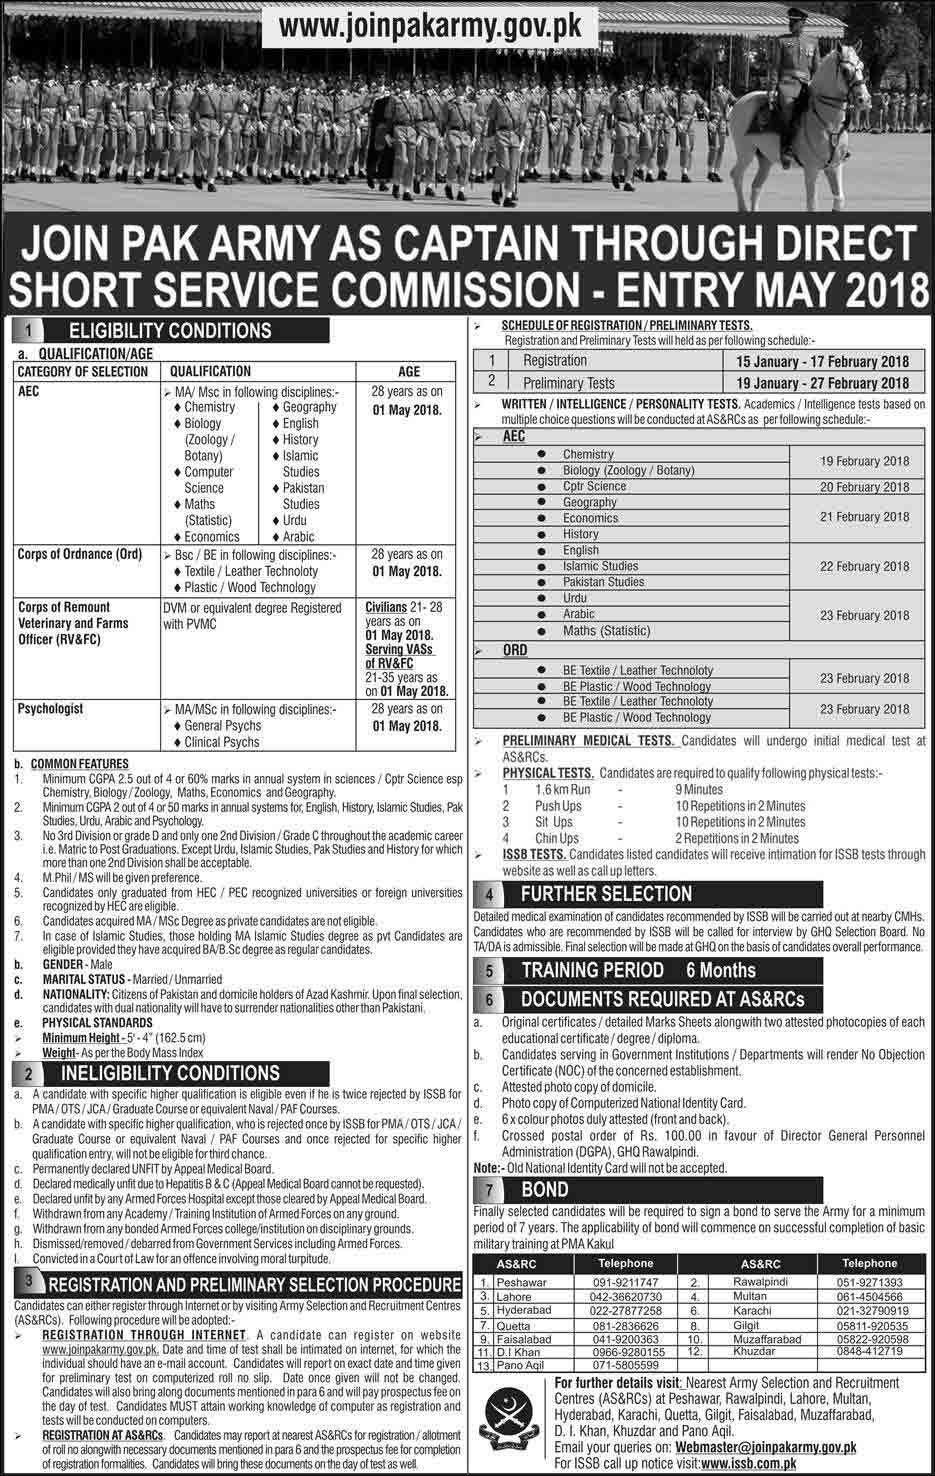 Join Pak Army as a Captain Through Short Service Course Entry May 2018